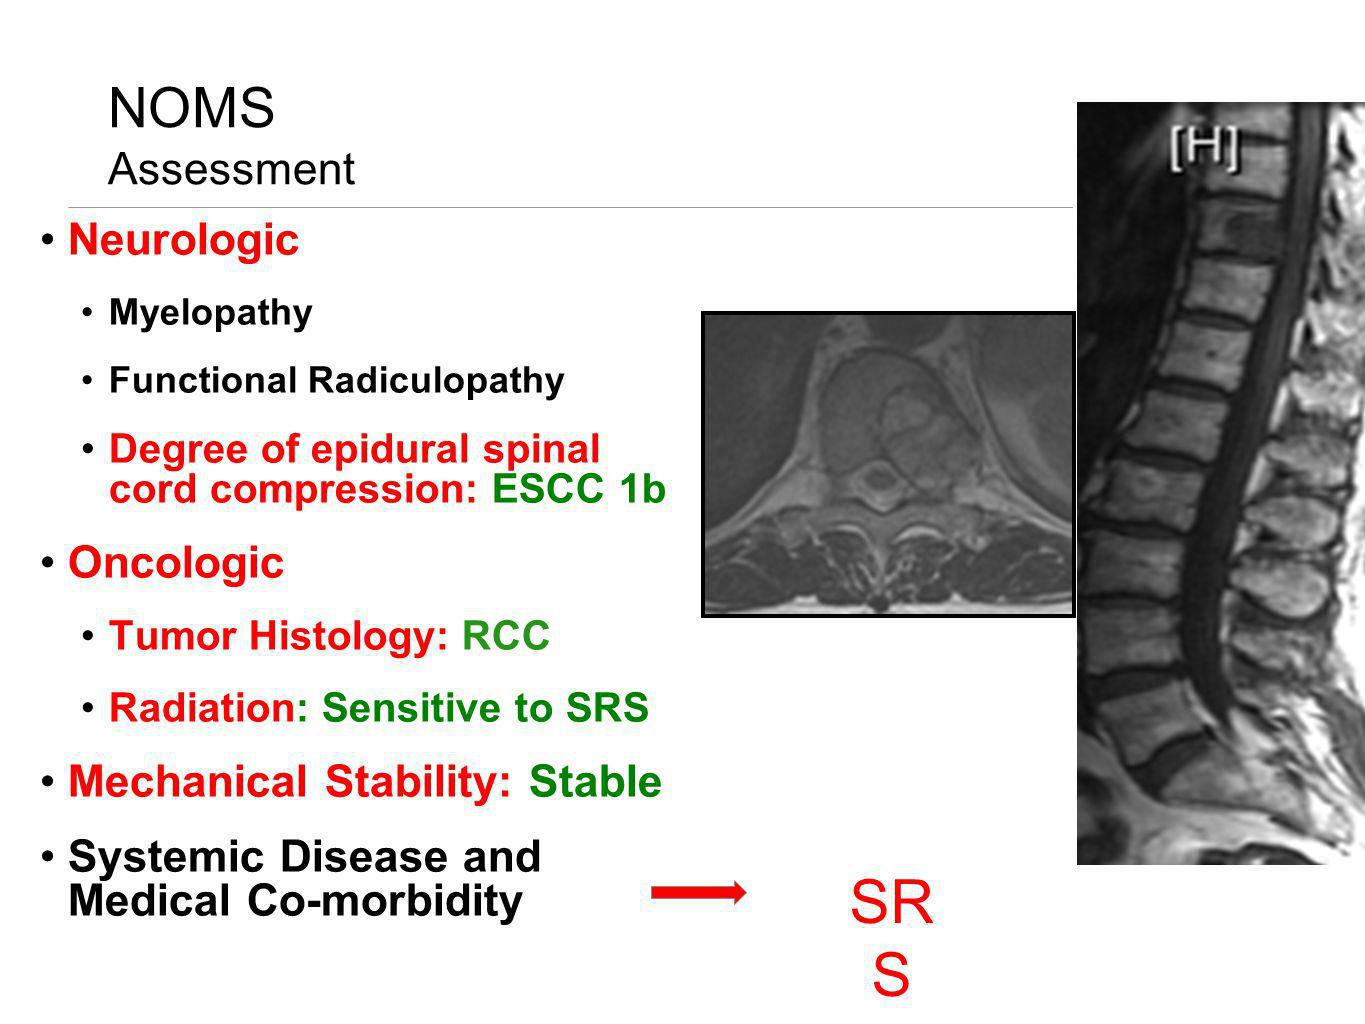 SRS NOMS Assessment Neurologic Oncologic Mechanical Stability: Stable